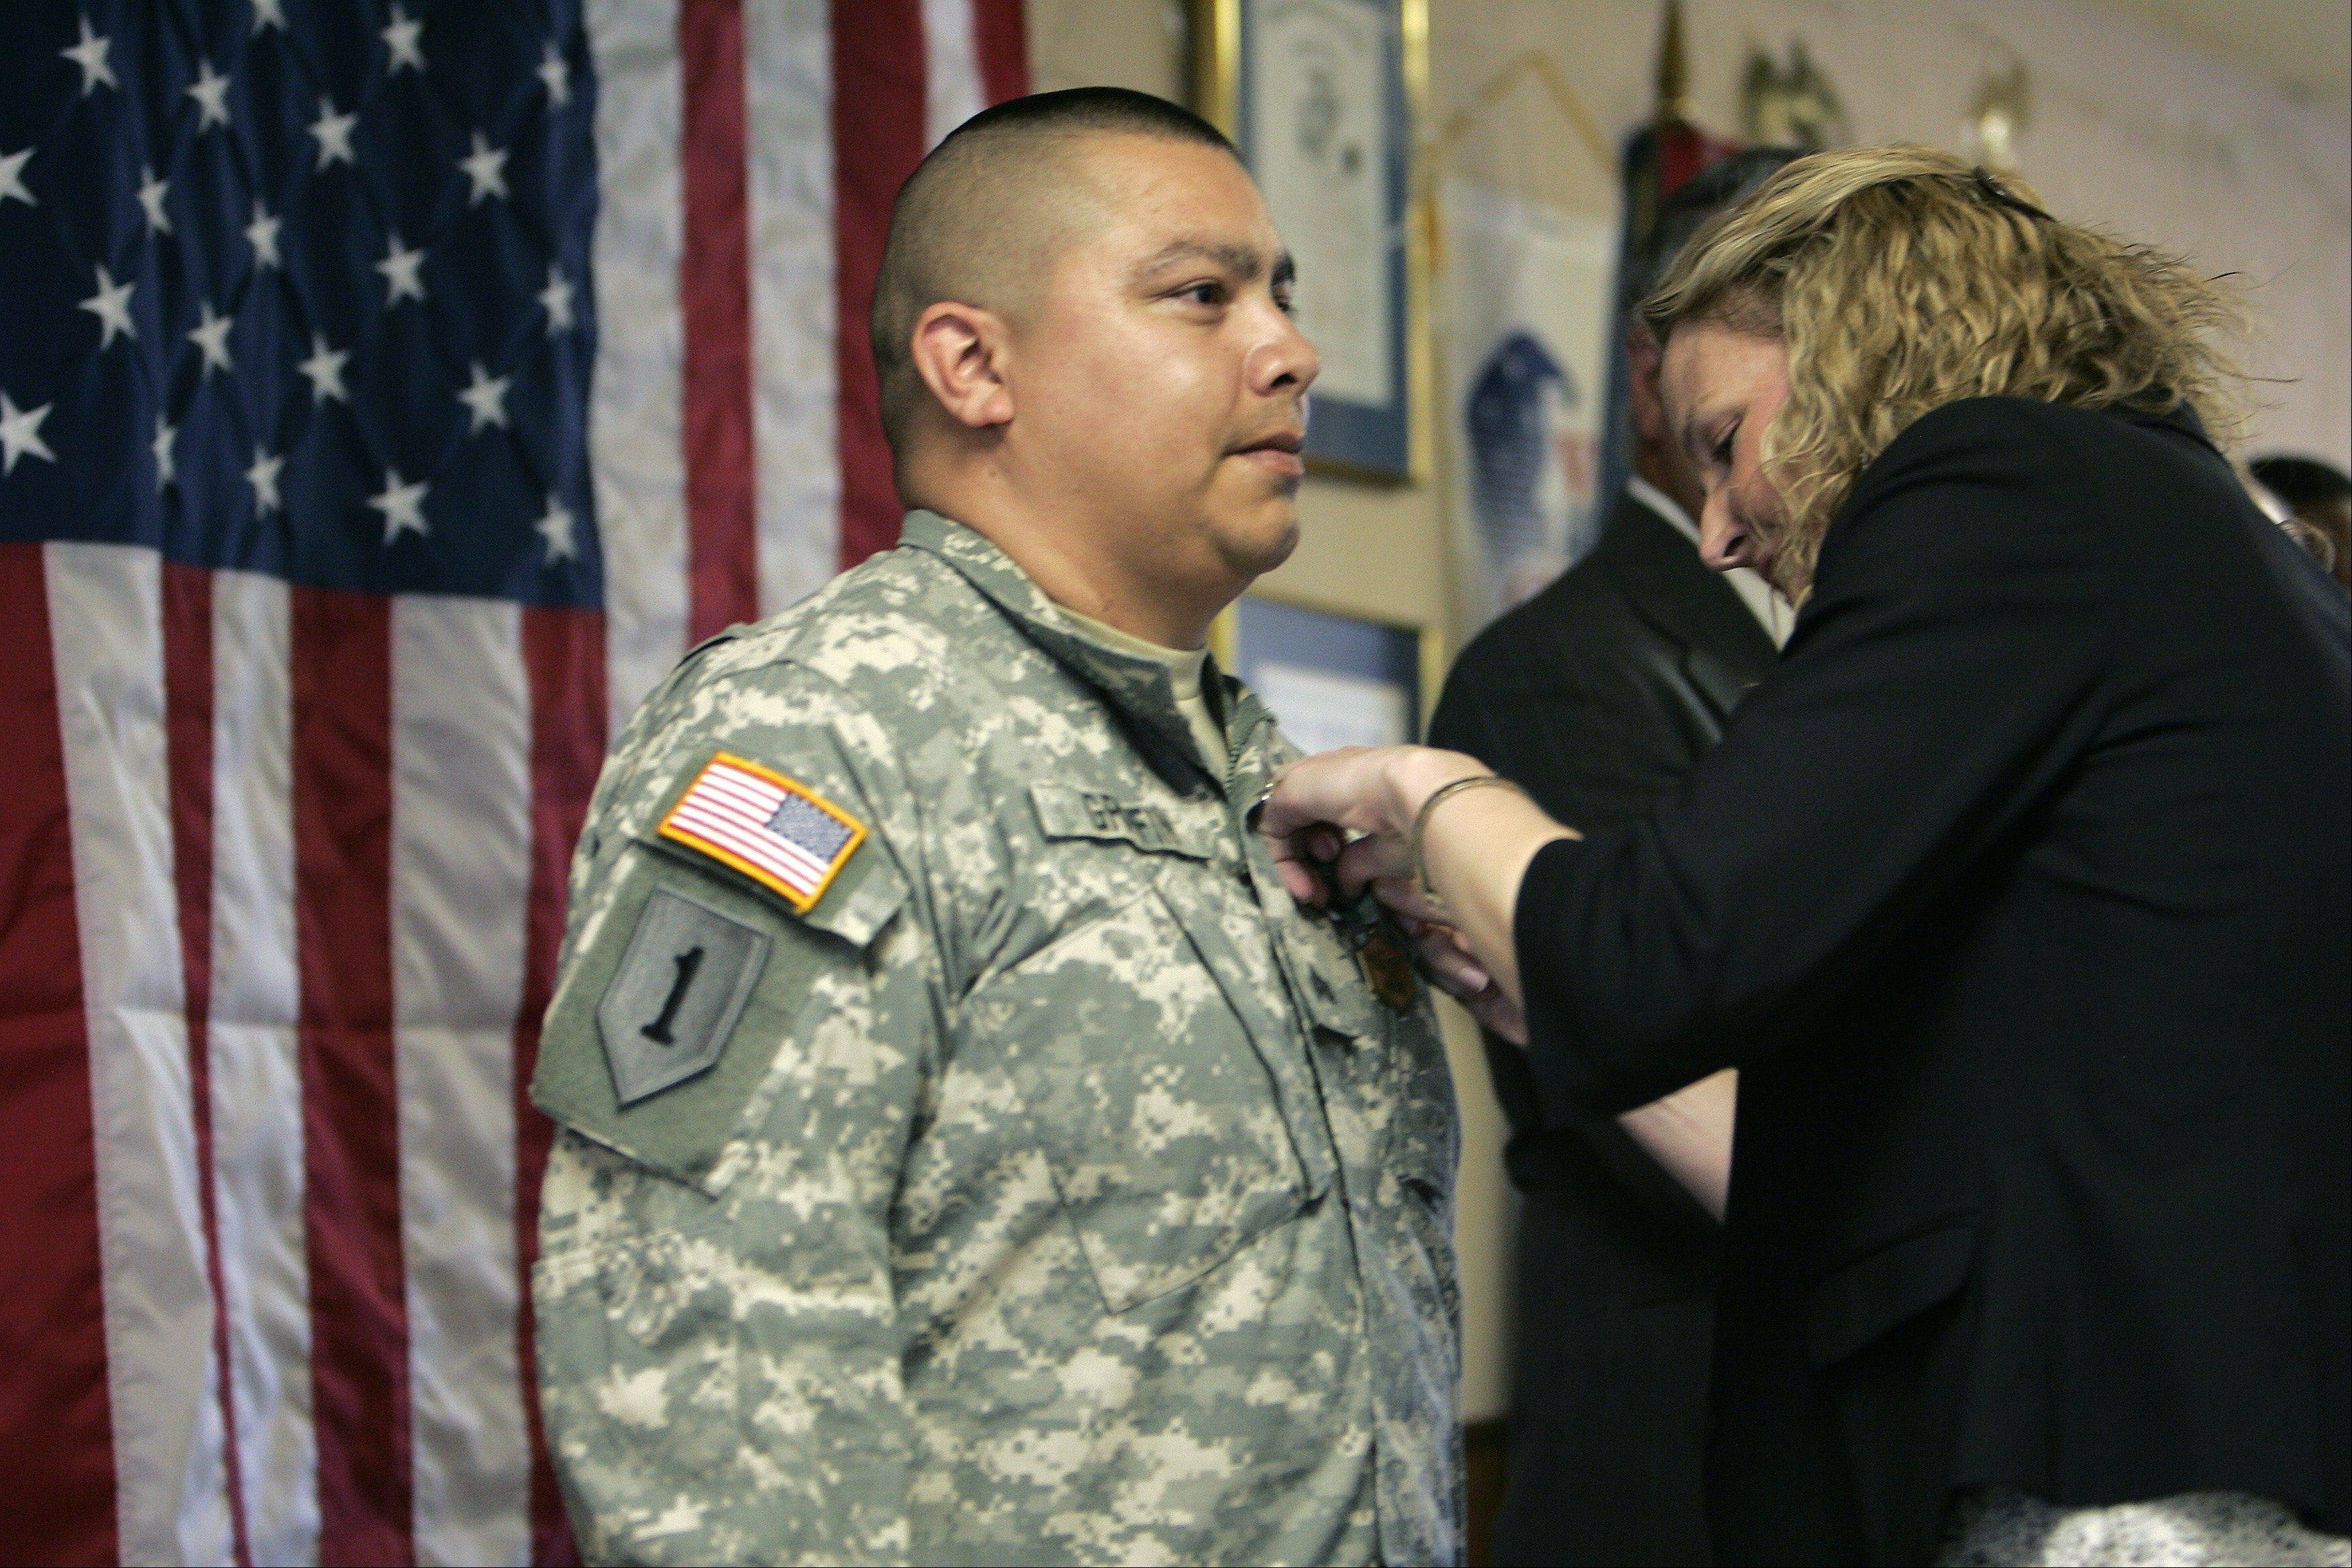 Retired U.S. Army Sgt. Michael Griffin of Carpentersville receives the Army Commendation Medal of Valor from Erica Borggren, director of Illinois Department of Veterans' Affairs.